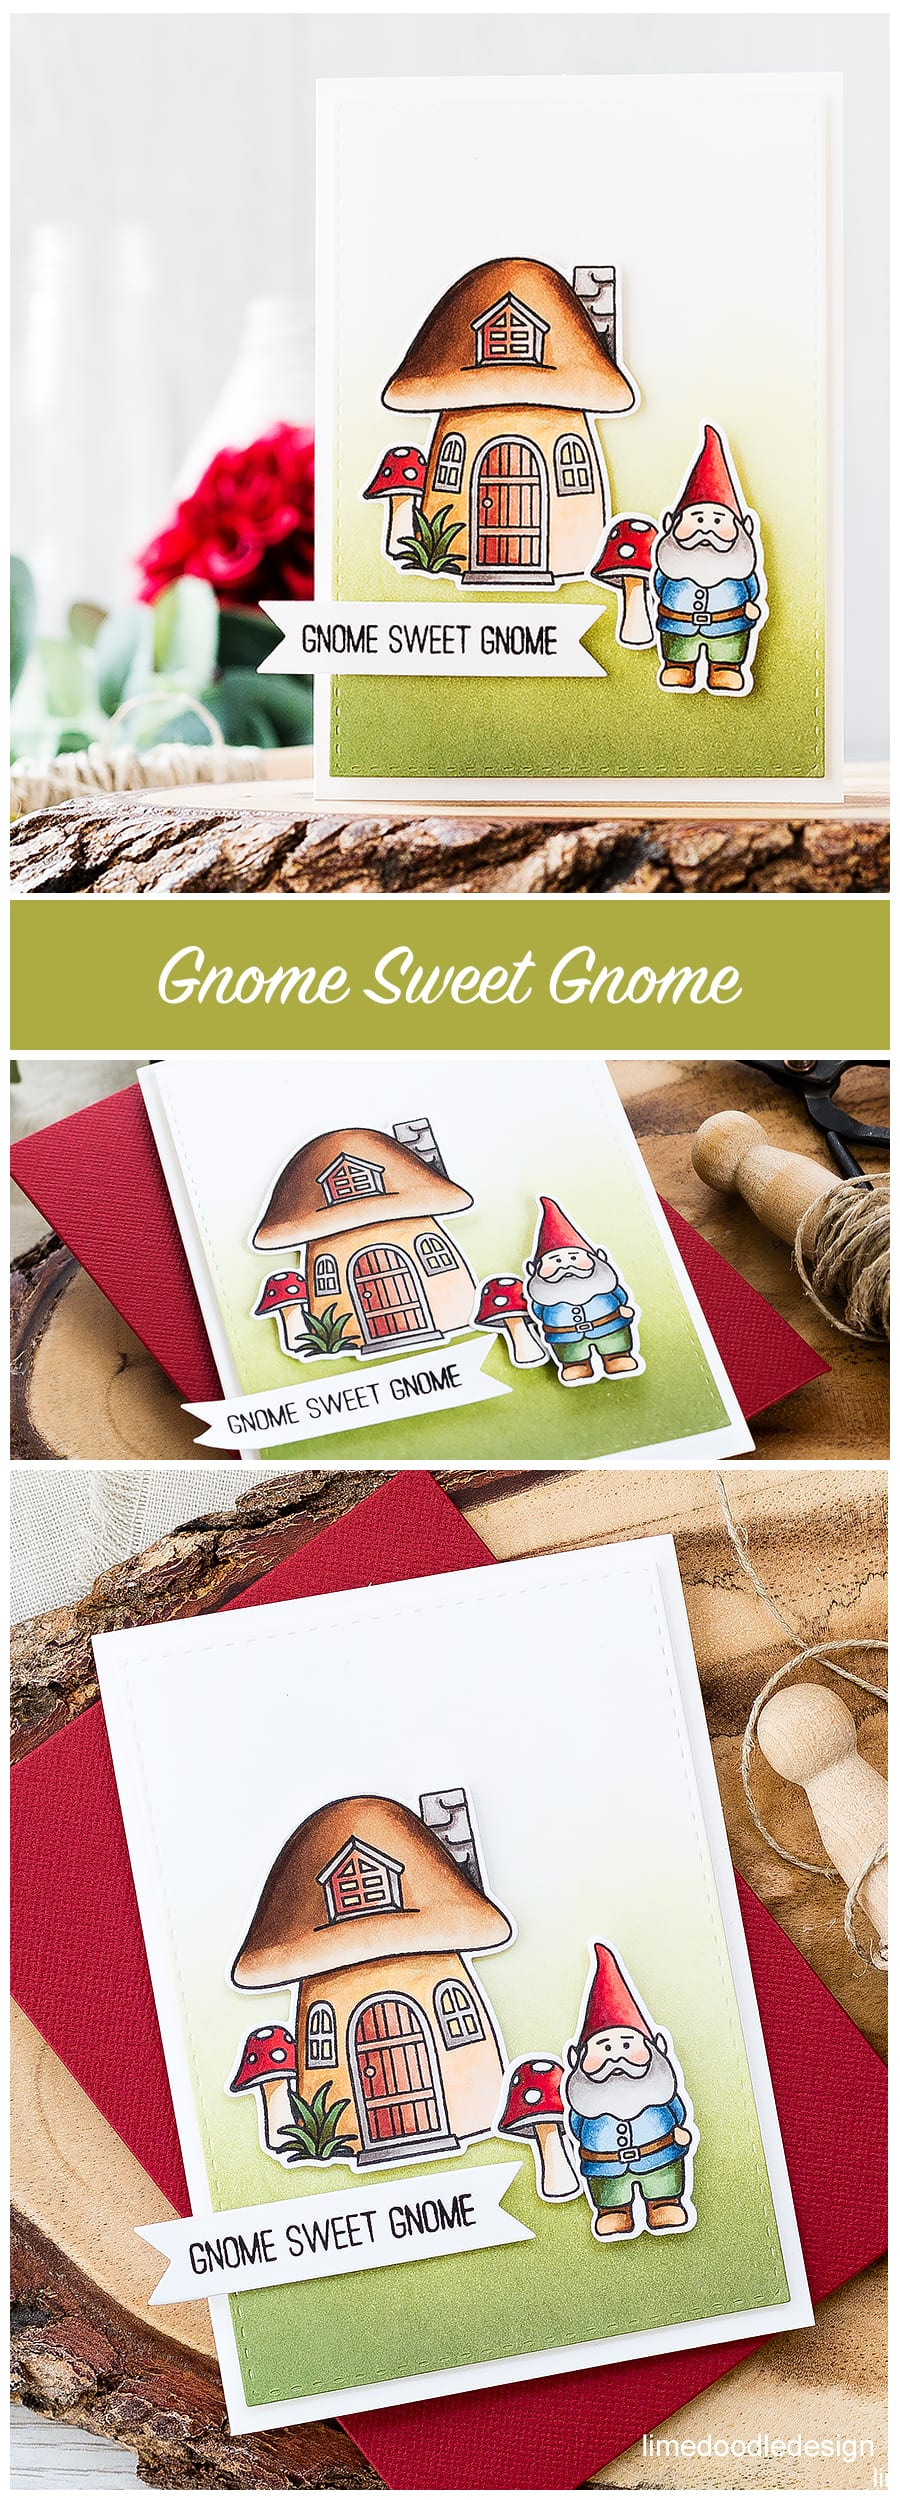 Gnome Sweet Gnome. Find out more about this card by clicking on the following link: https://limedoodledesign.com/2016/09/stamptember-fun-blog-hop-giveaway/